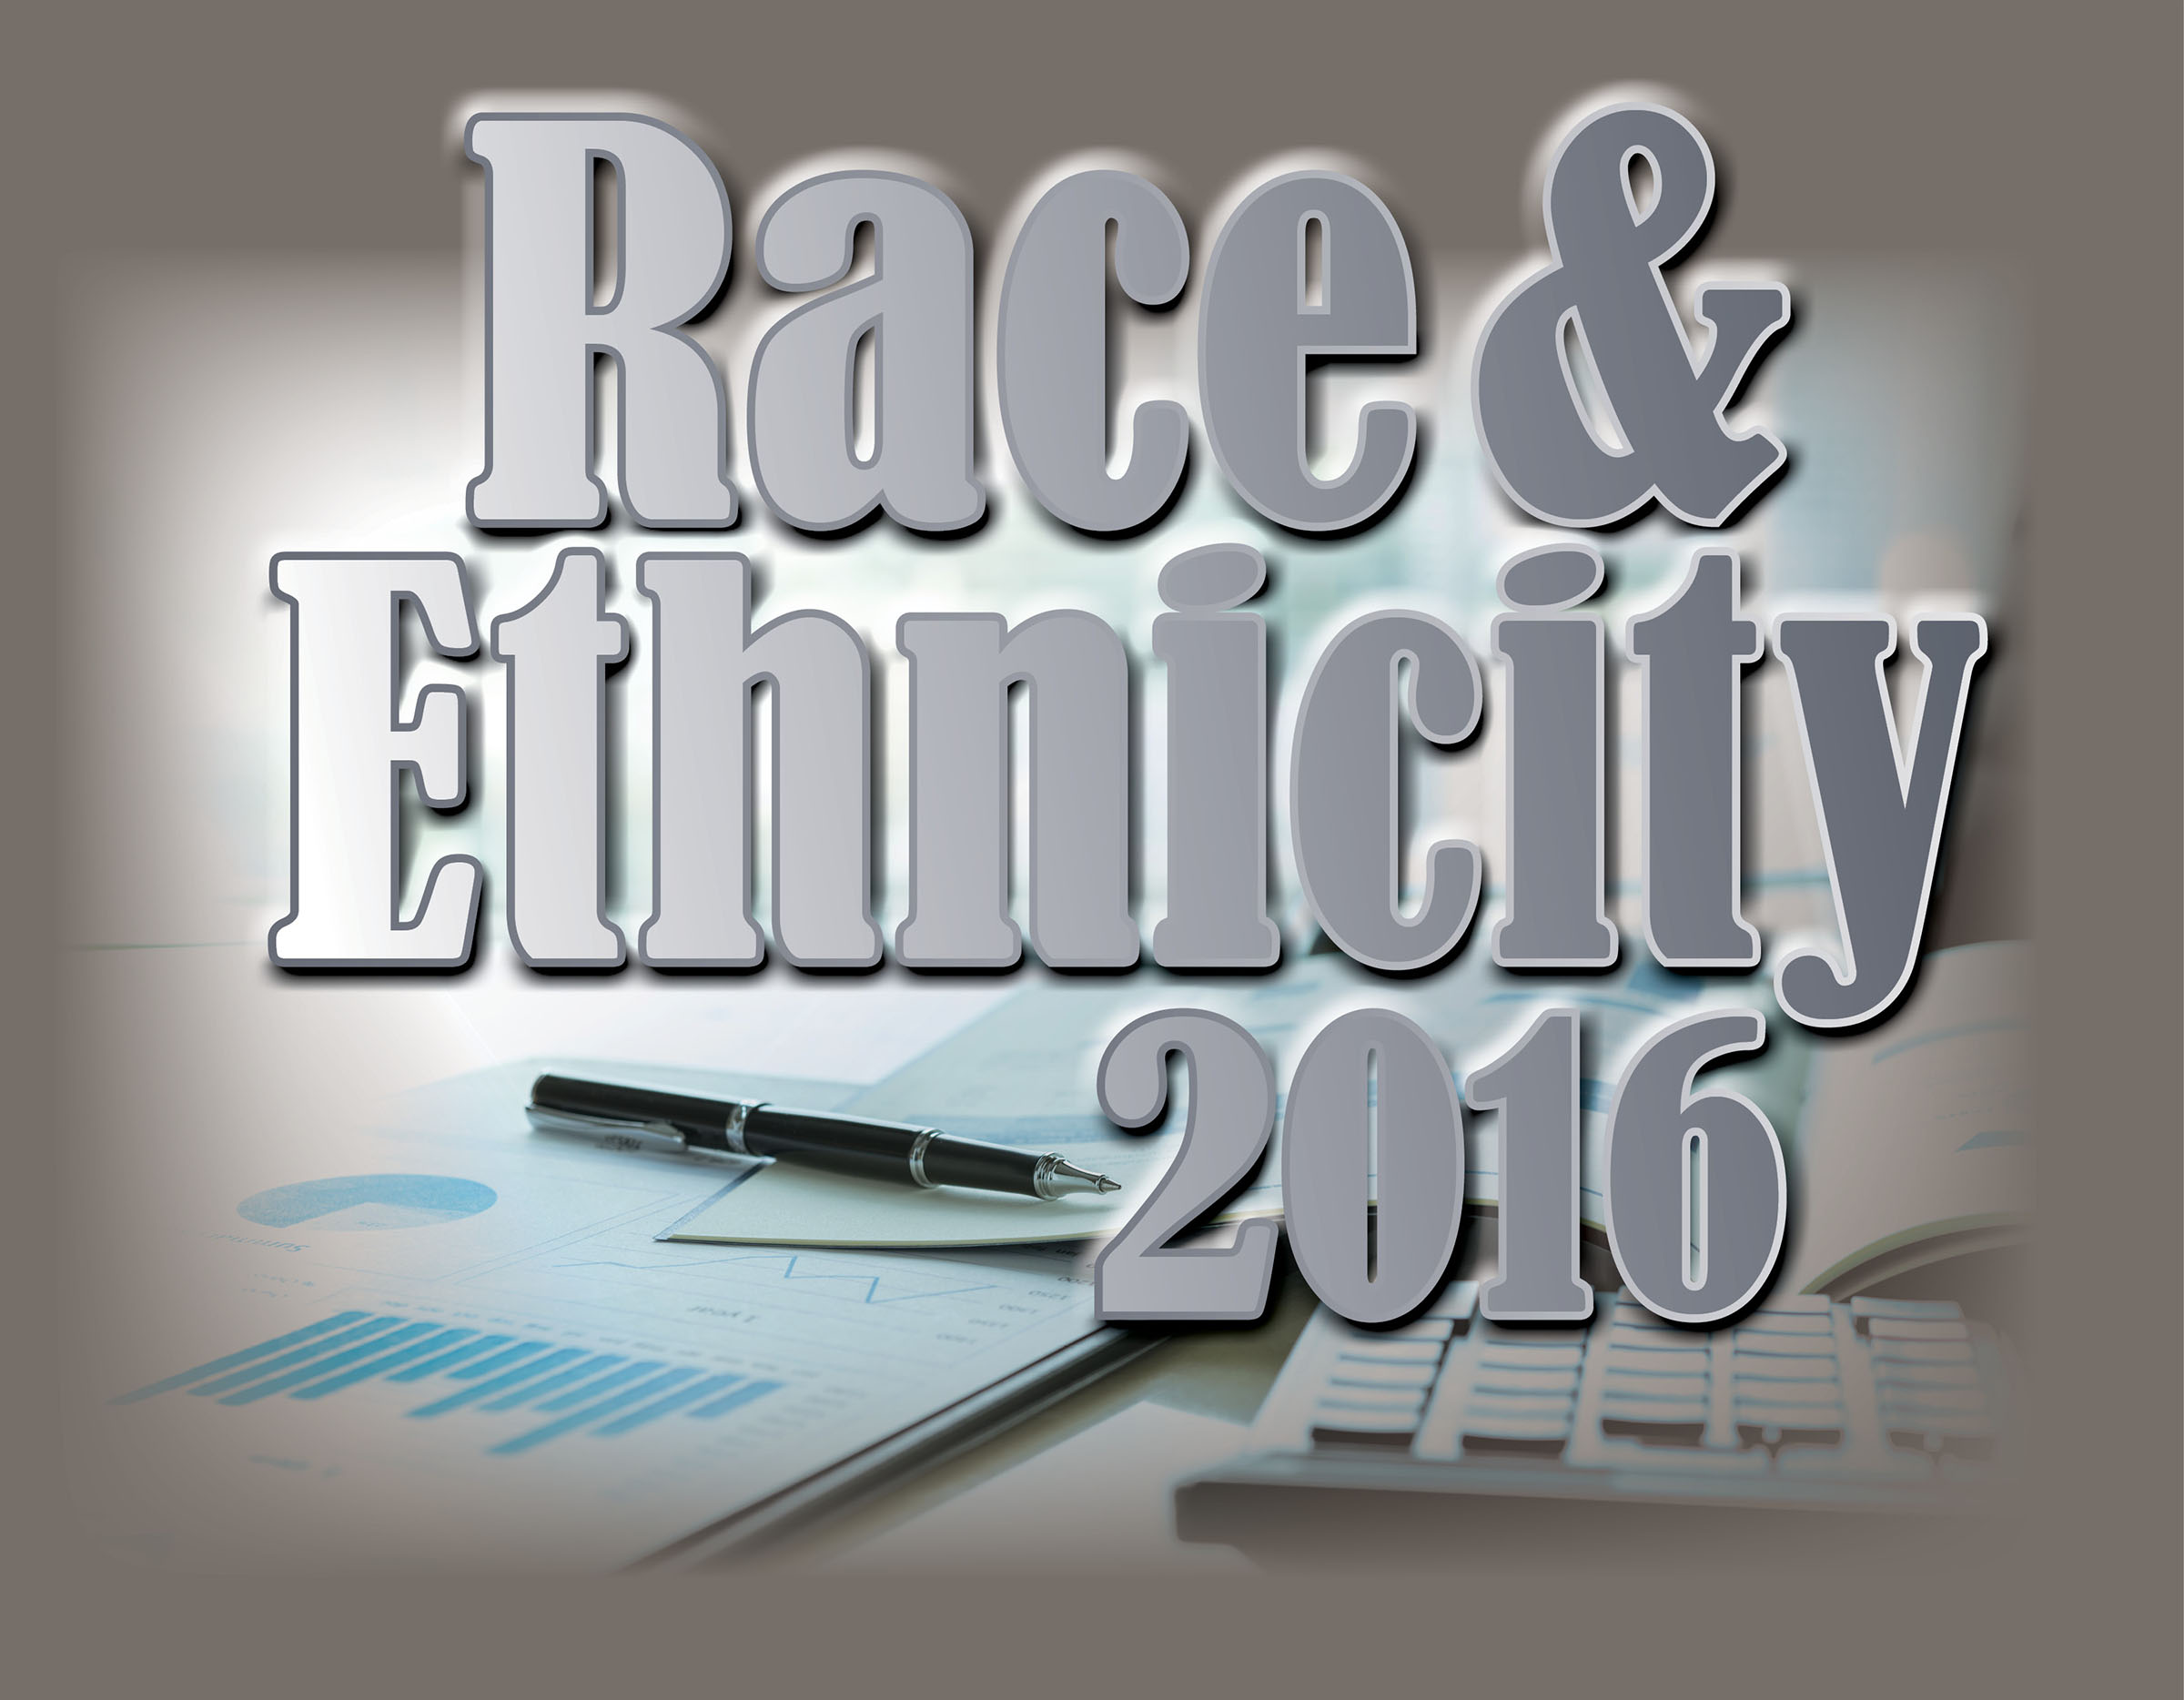 Labor force characteristics by race and ethnicity, 2016 : BLS